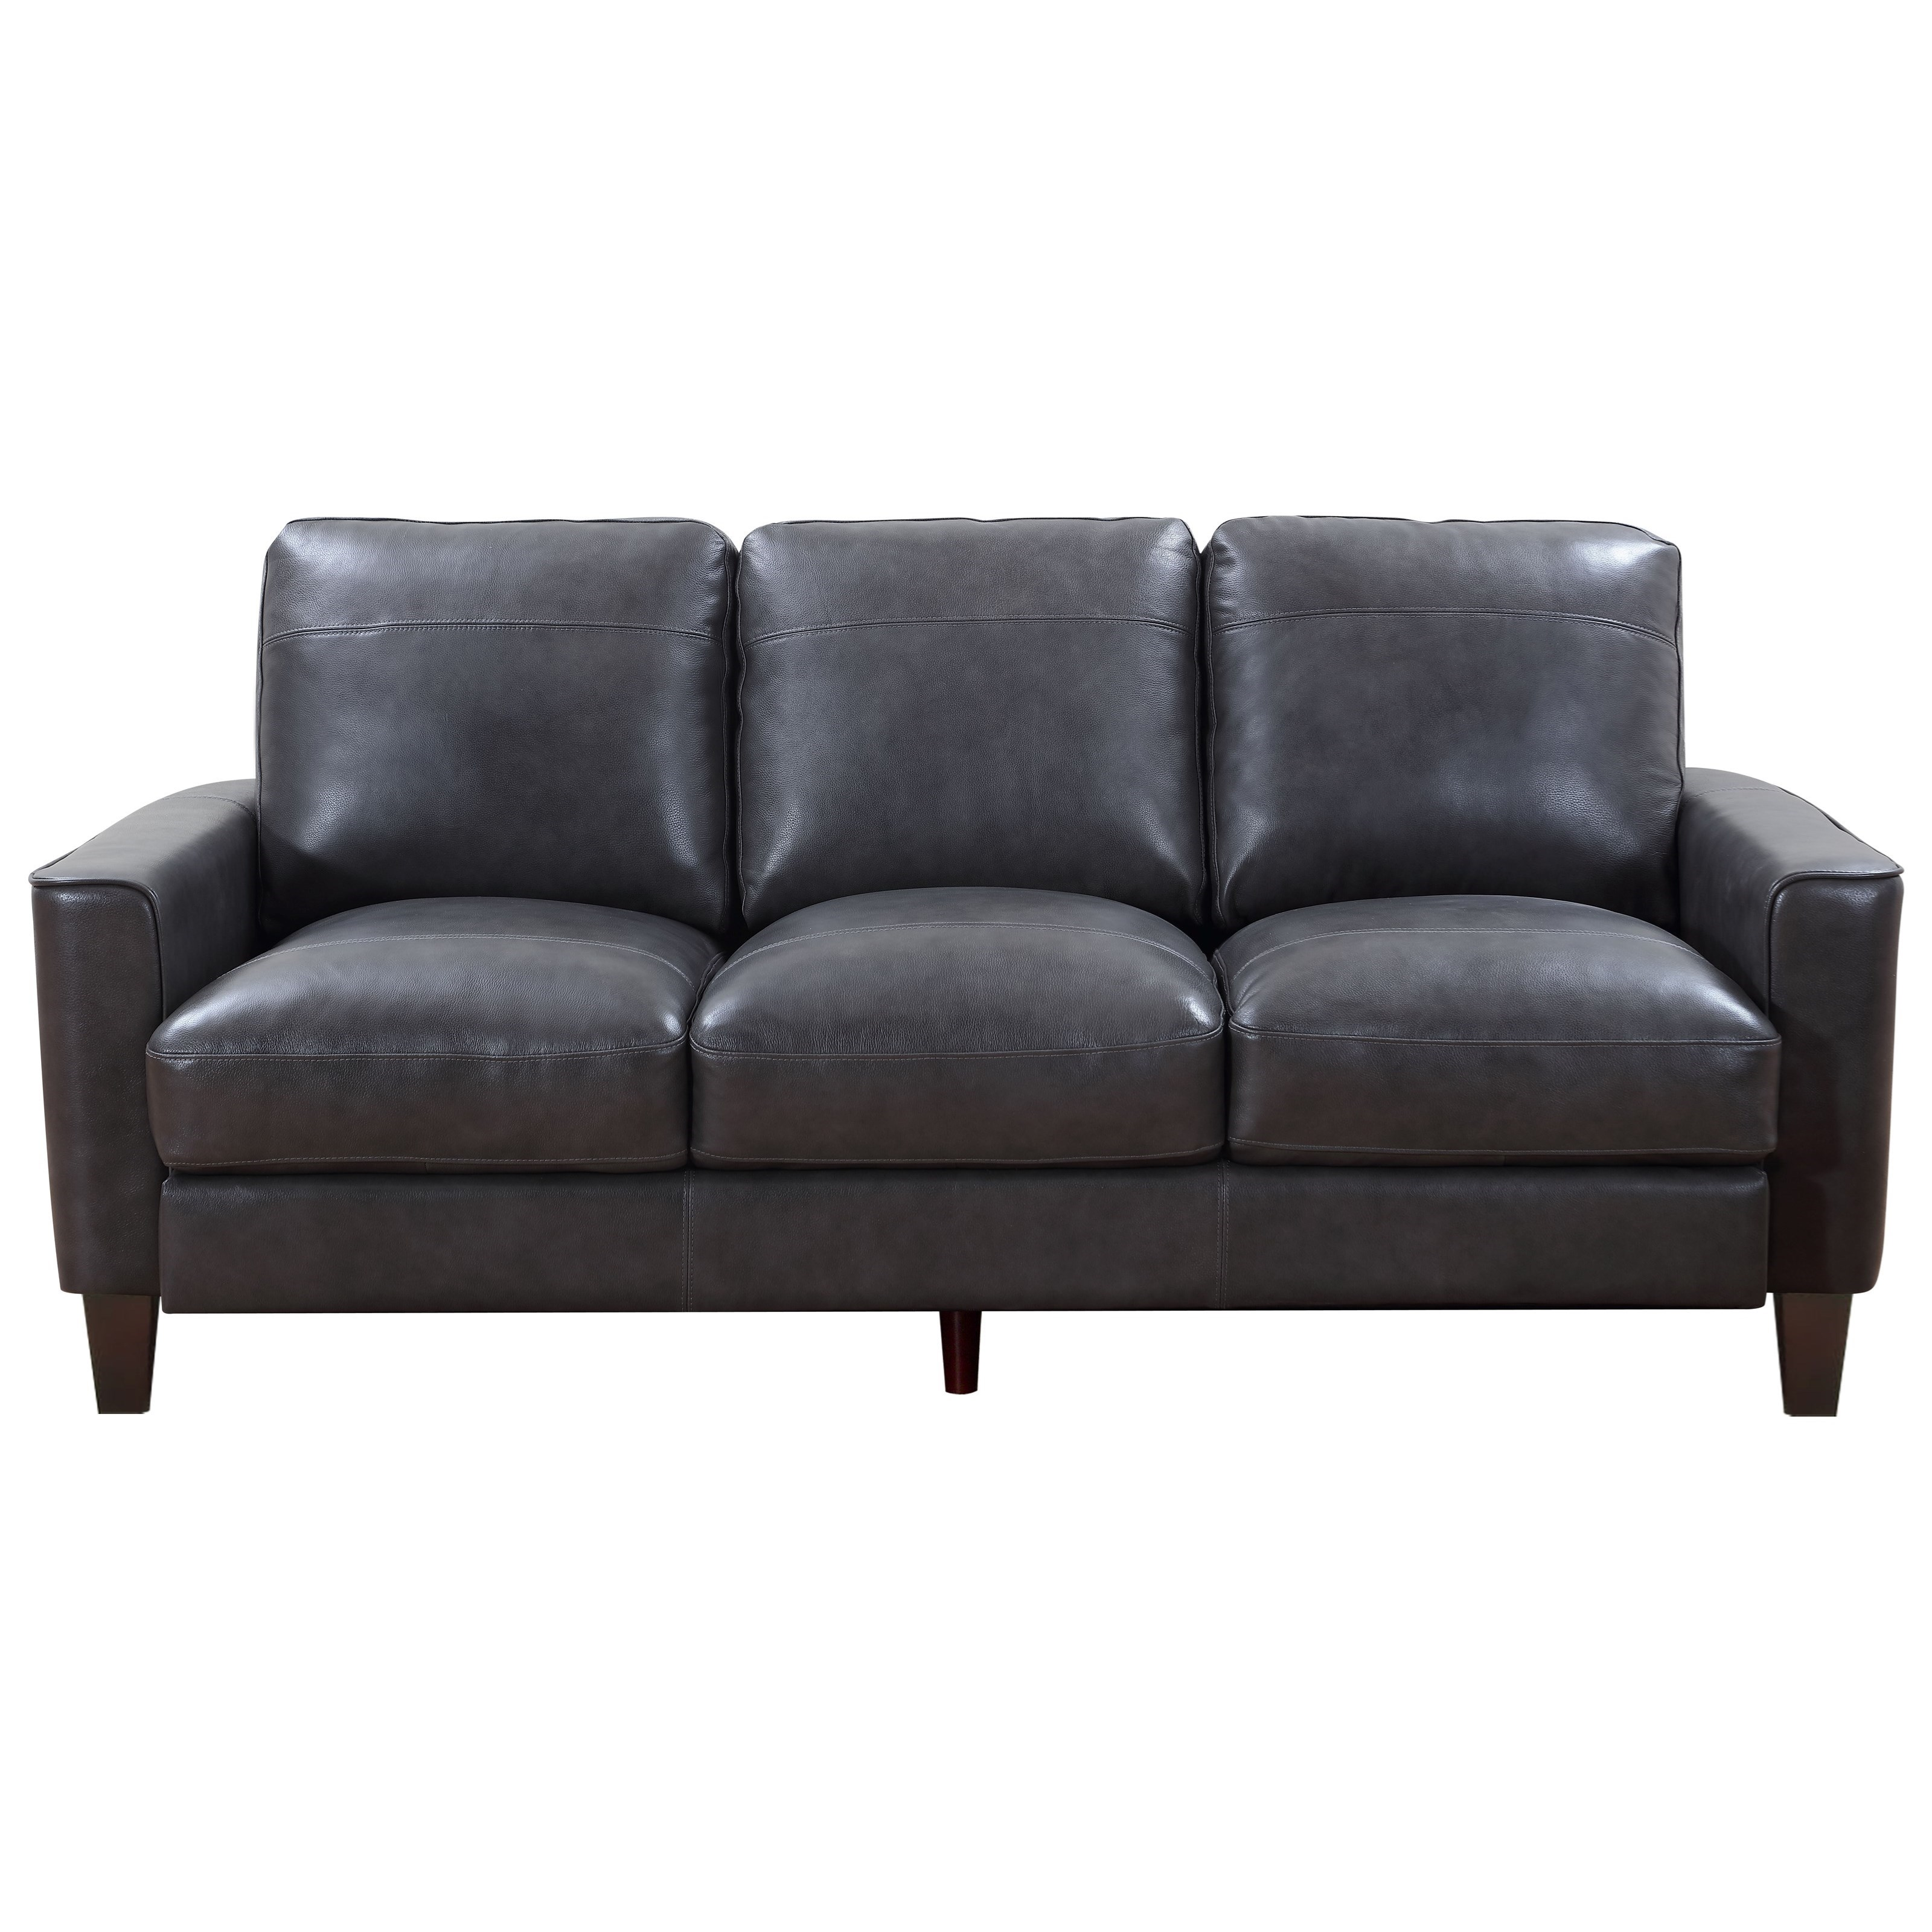 Georgetown - Chino Sofa by Vendor 1919 at Becker Furniture